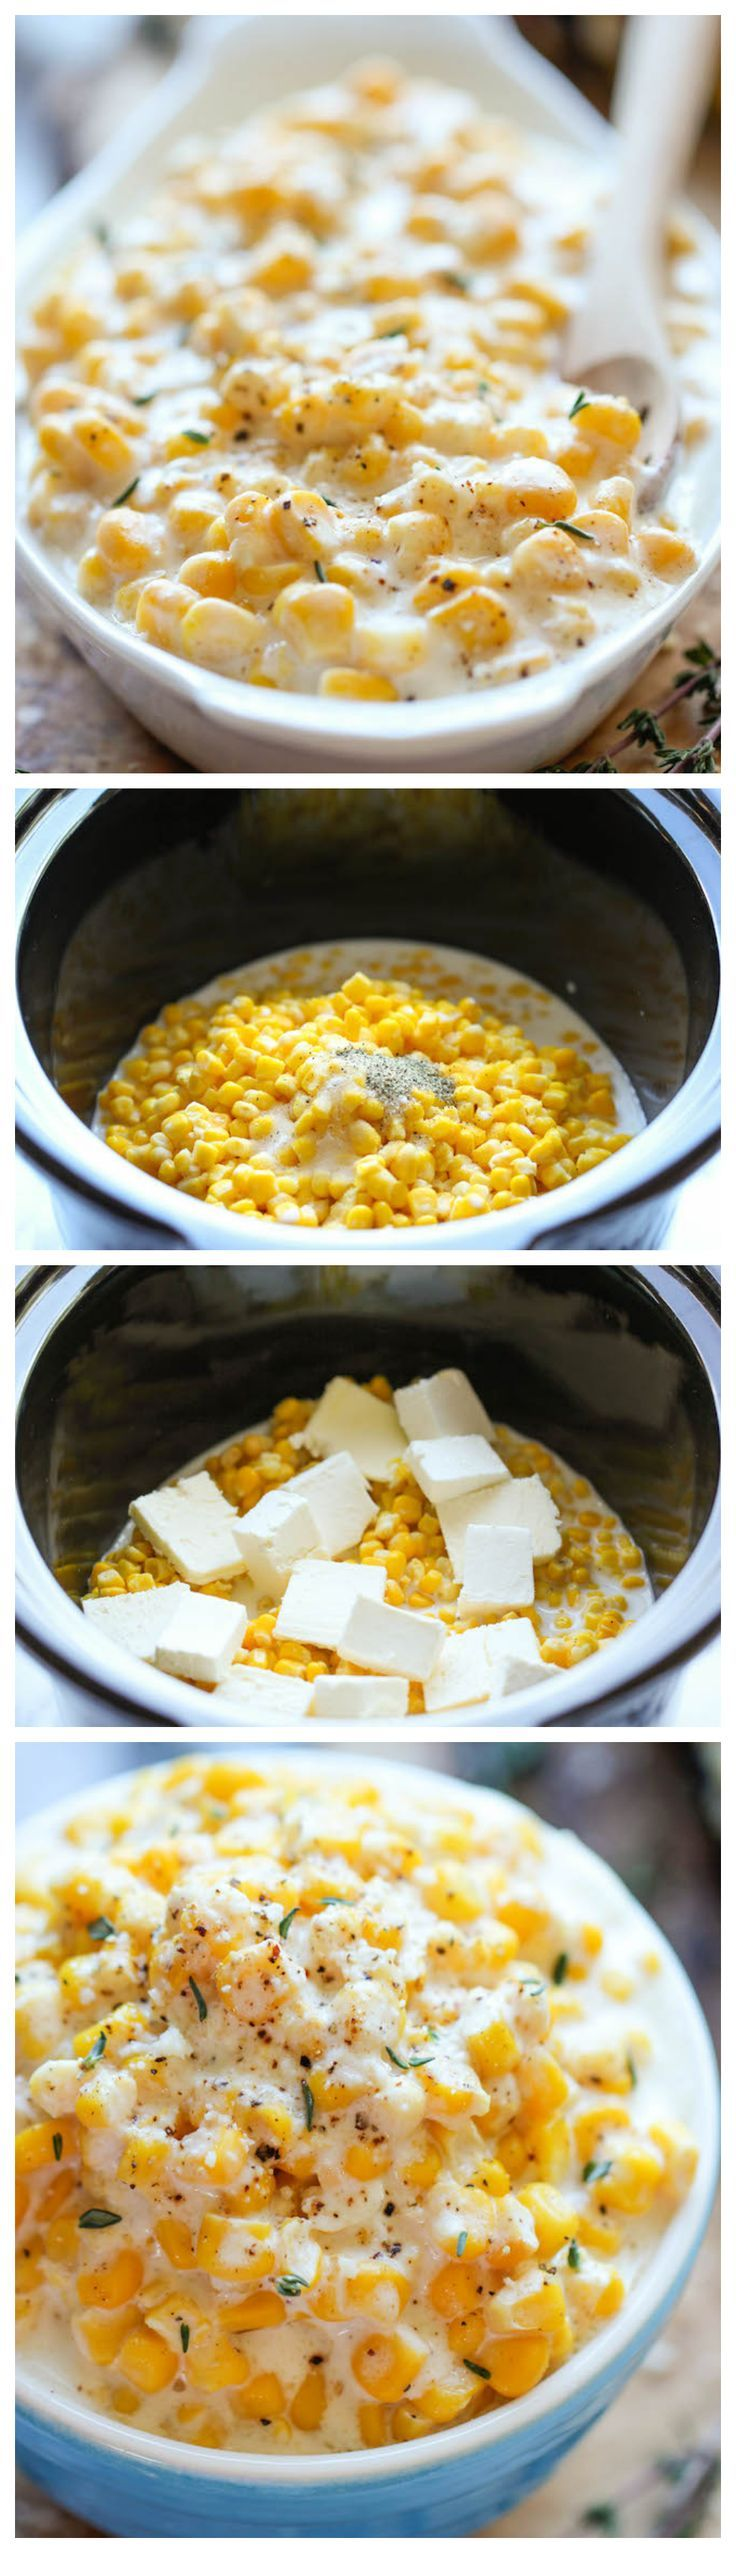 Slow Cooker Creamed Corn - It's so rich and creamy and unbelievably easy to make with just 5 ingredients!